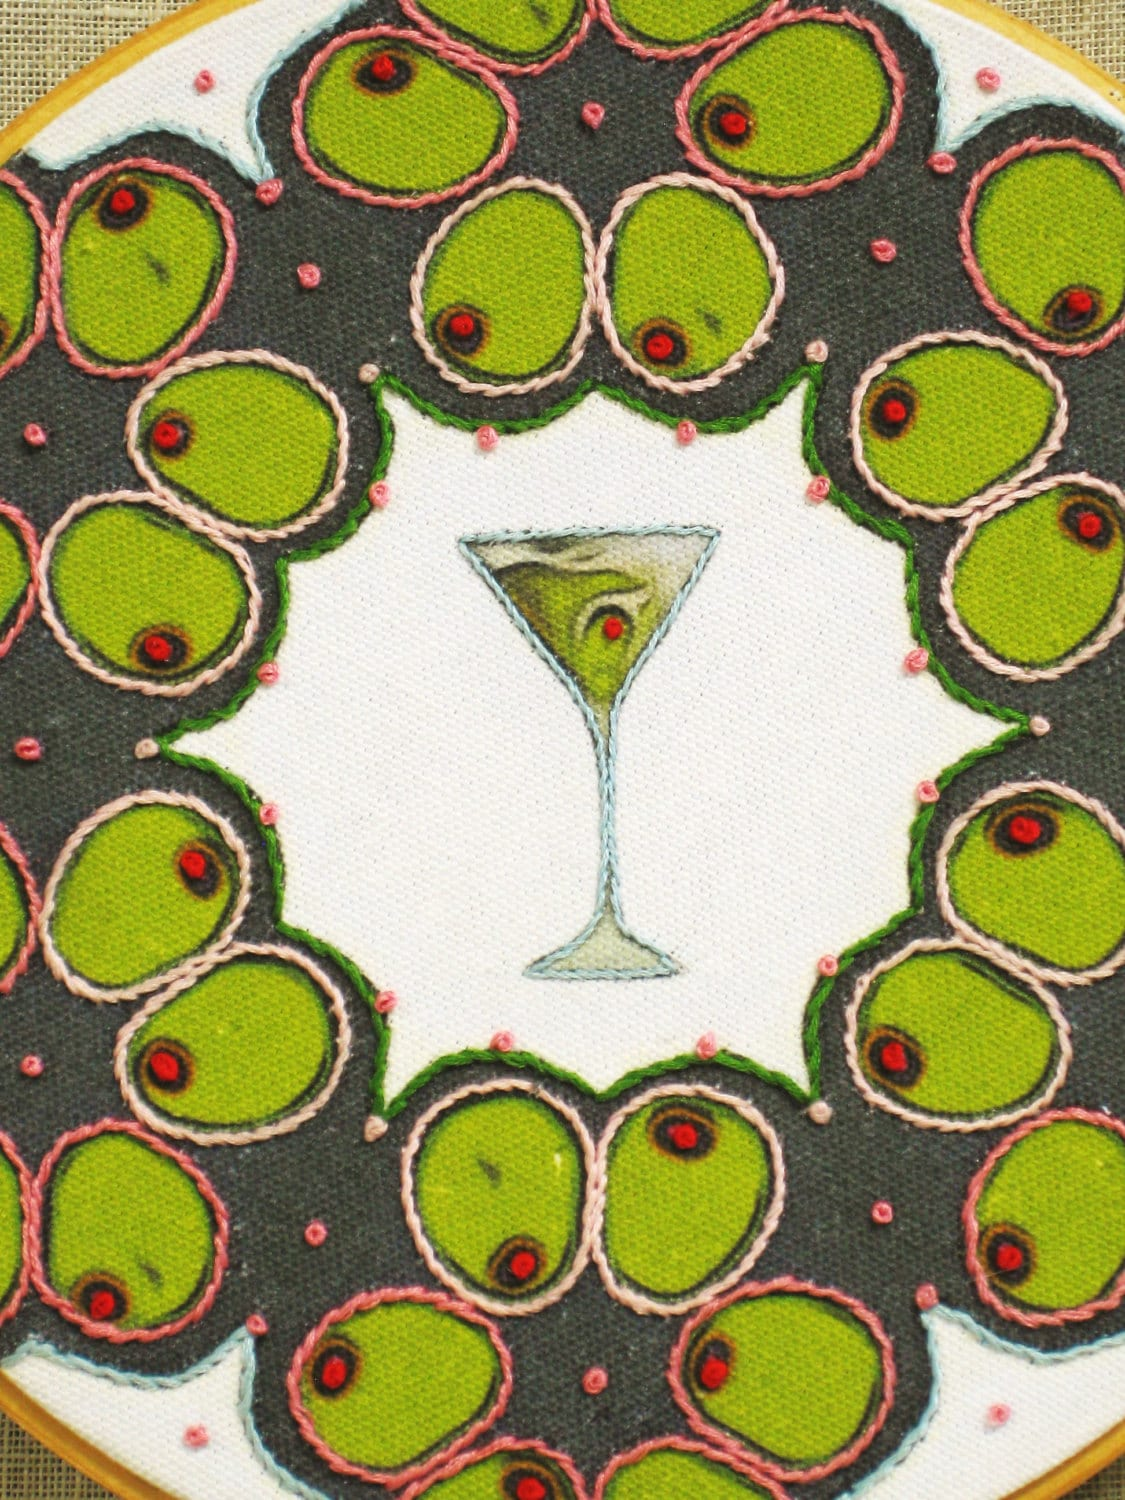 Hoop Art Embroidery Hand Embroidered Martini Olives